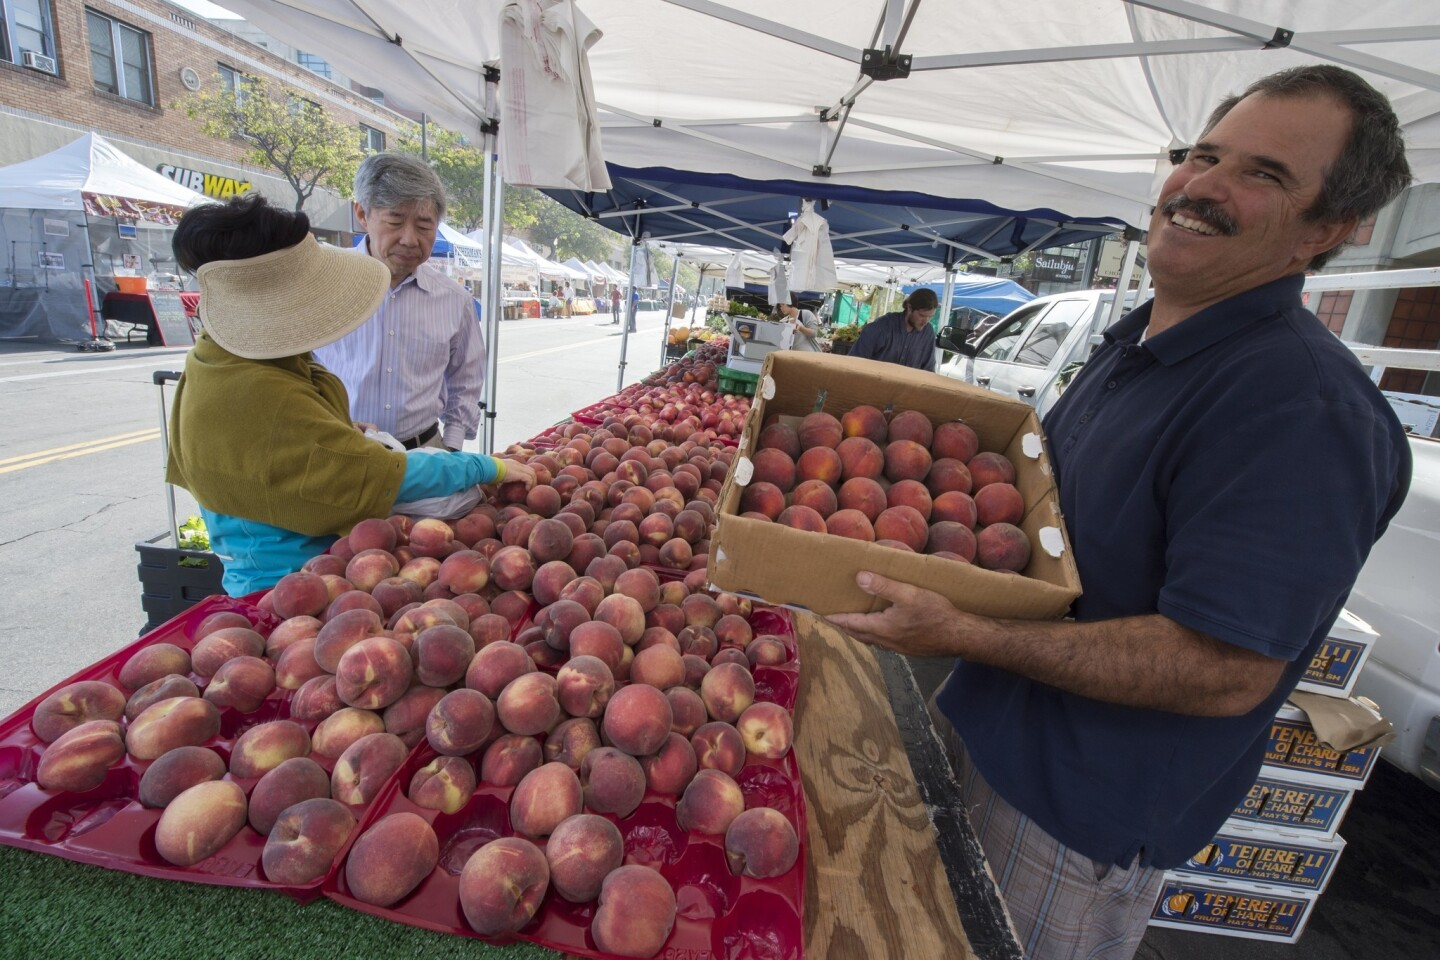 John Tenerelli holds a box with the first Summer Lady peaches of the season, which he grew in Littlerock, at the Old Pasadena farmers market.